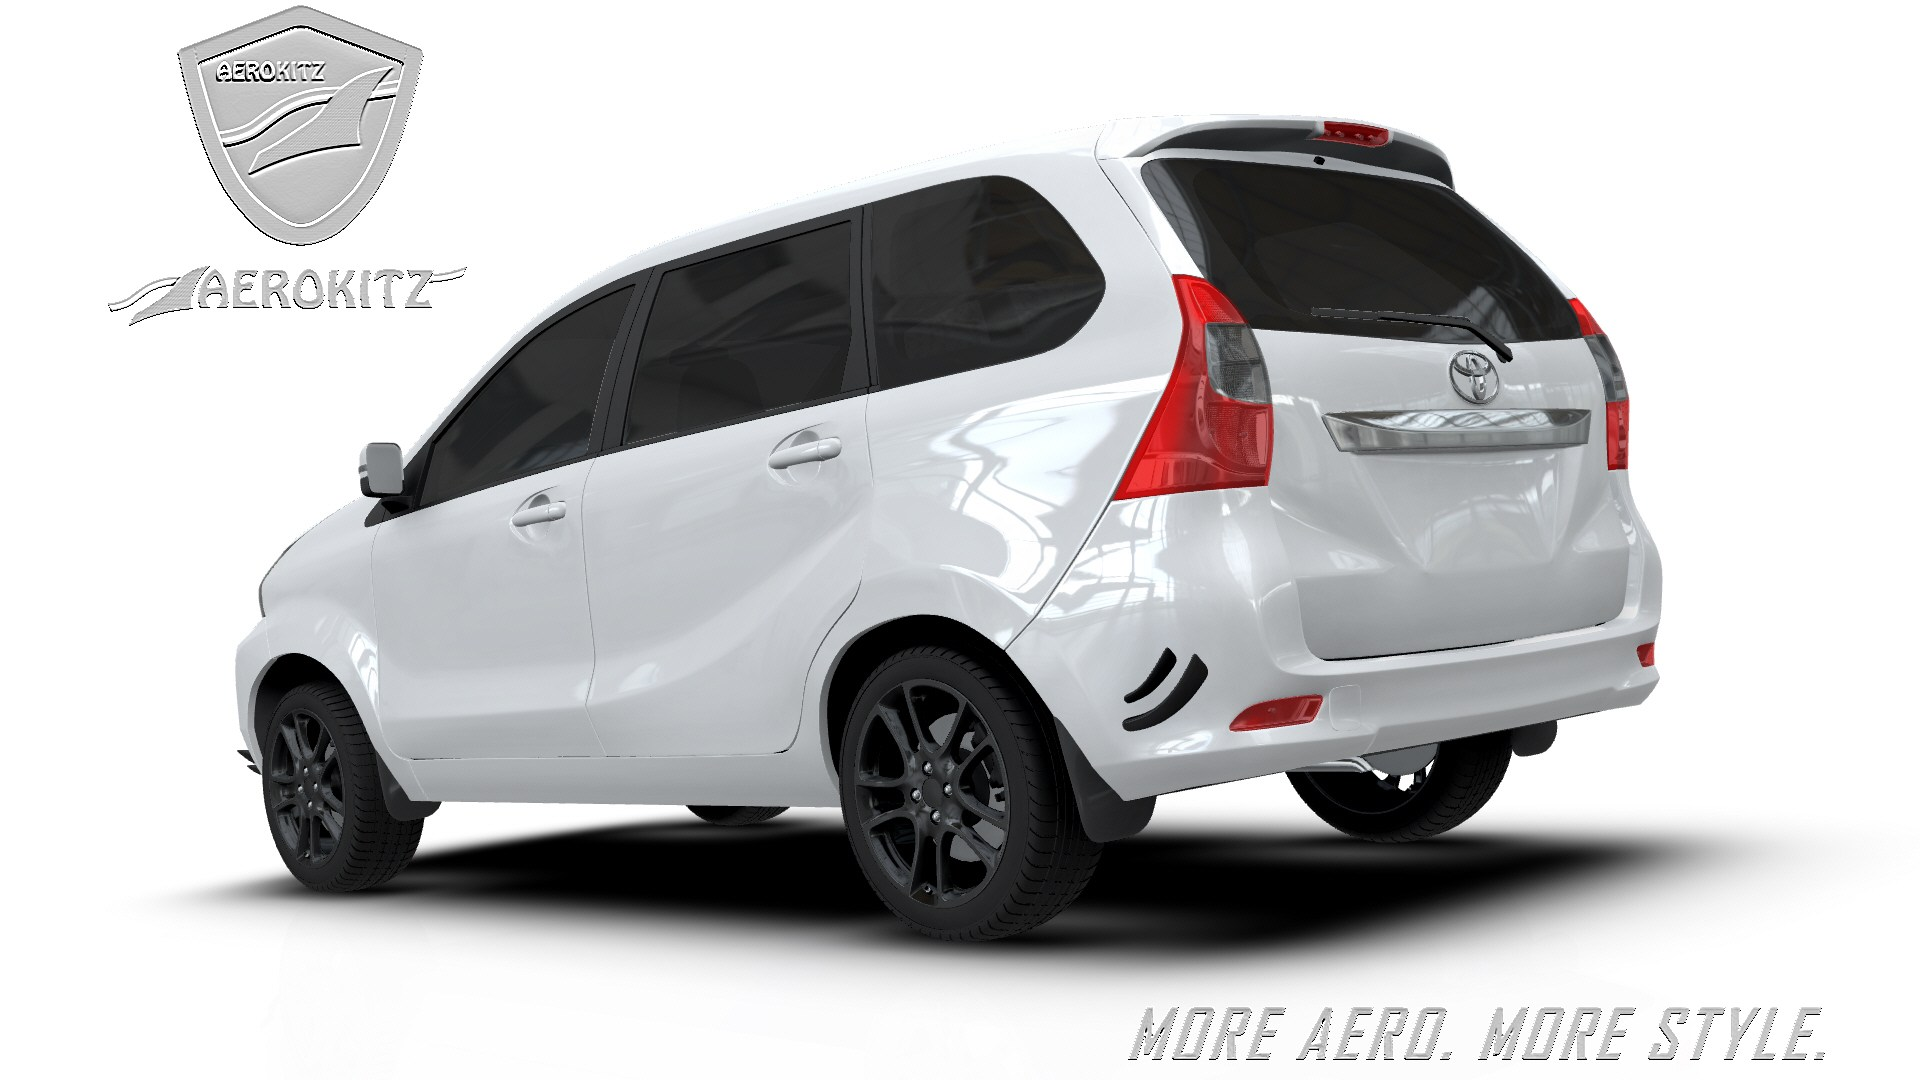 aksesoris grand new avanza 2017 toyota yaris trd sportivo modif aerokitz modifikasi racing style rear